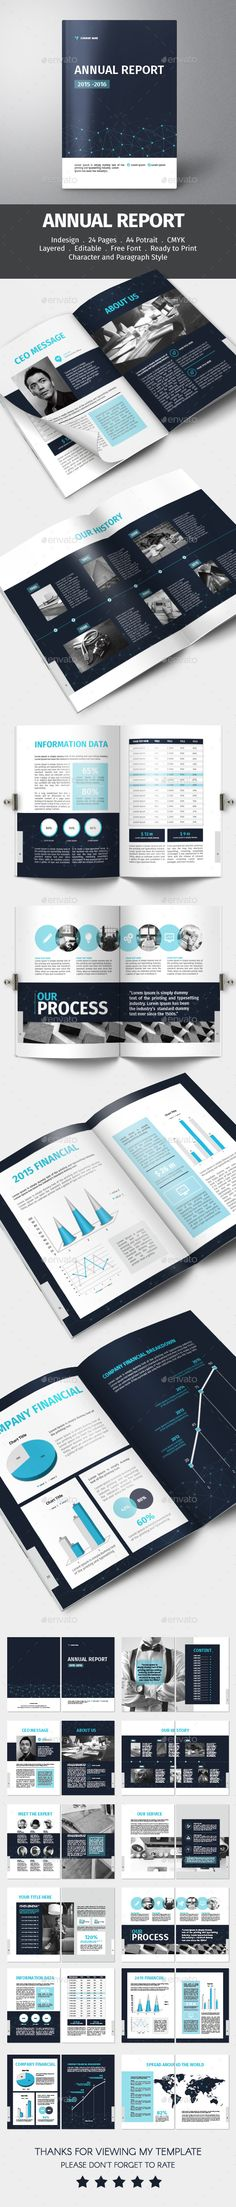 I like the page layout of this one.  Annual Report Template INDD, Vector. Download here: http://graphicriver.net/item/annual-report/15470670?ref=ksioks